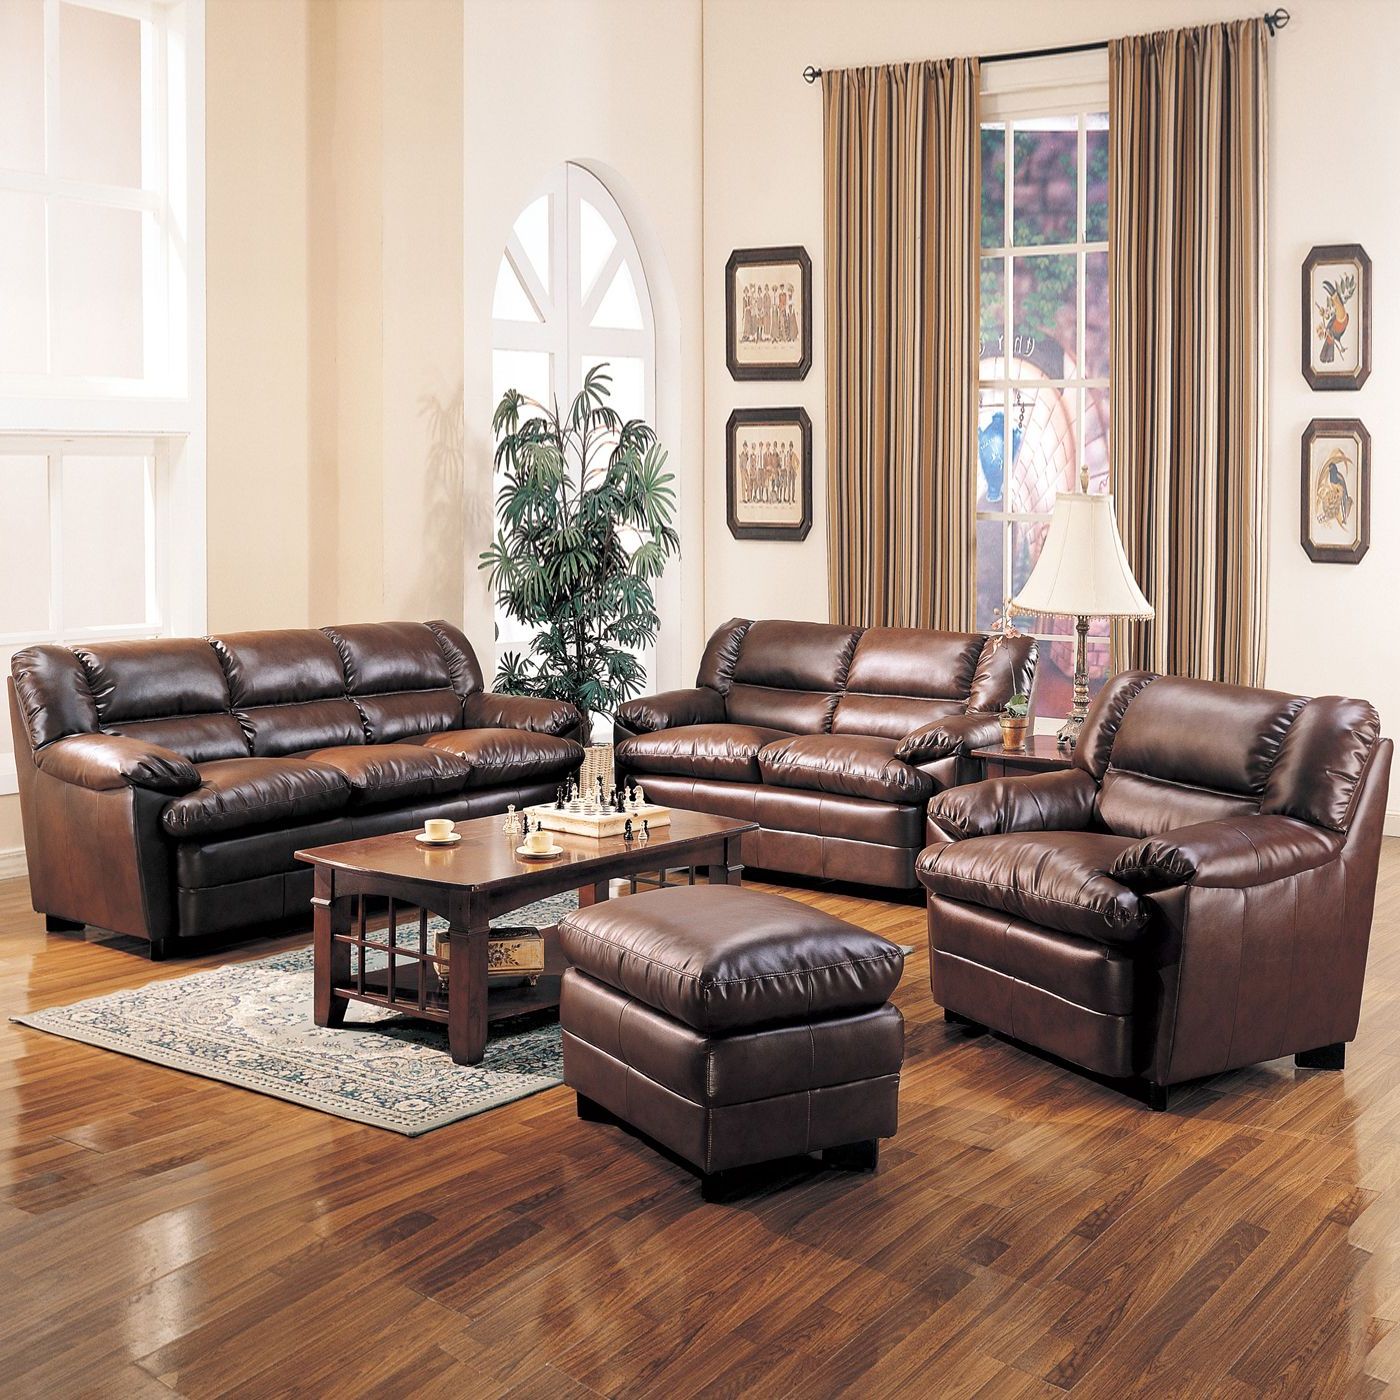 Preferred Declan 3 Piece Power Reclining Sectionals With Left Facing Console Loveseat Intended For Cream Living Room Sets: Vintage Living Room Set Up With Dark Brown (View 14 of 20)